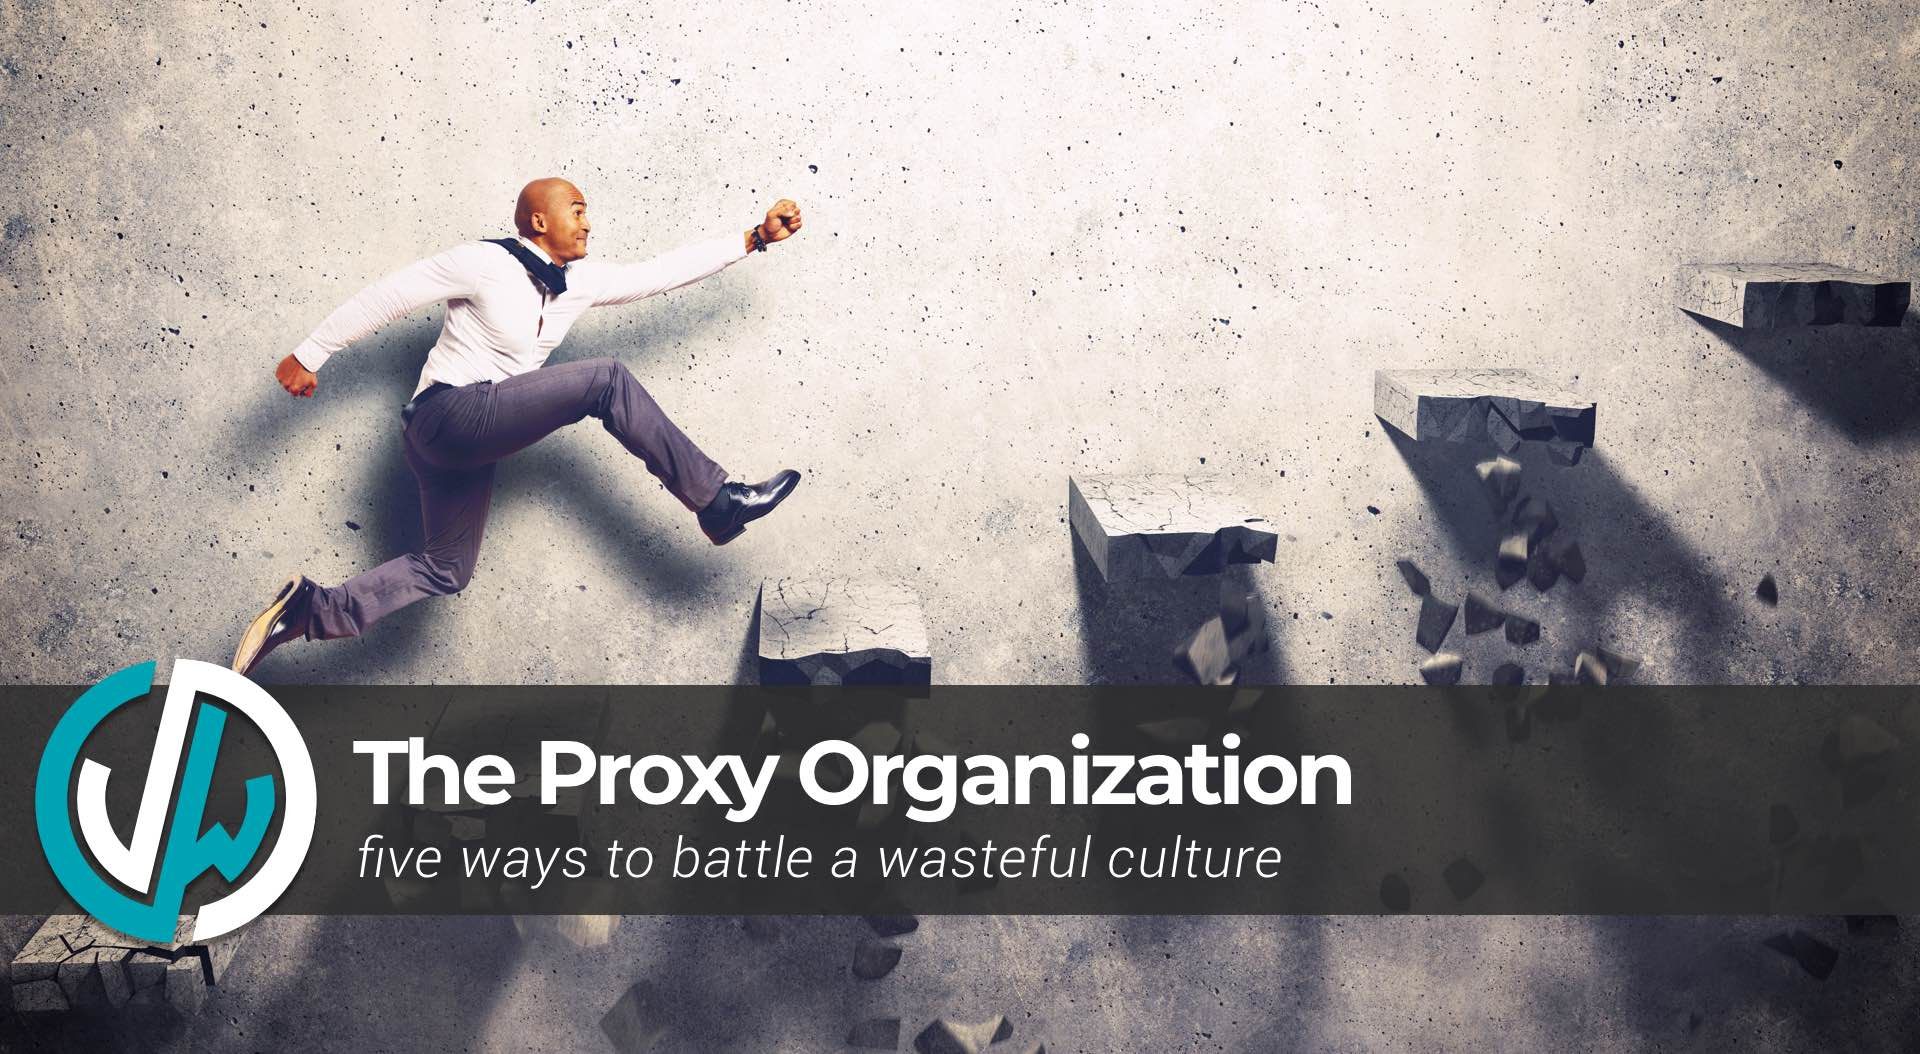 The Proxy Organization - five ways to battle a wasteful culture | jimiwikman.se